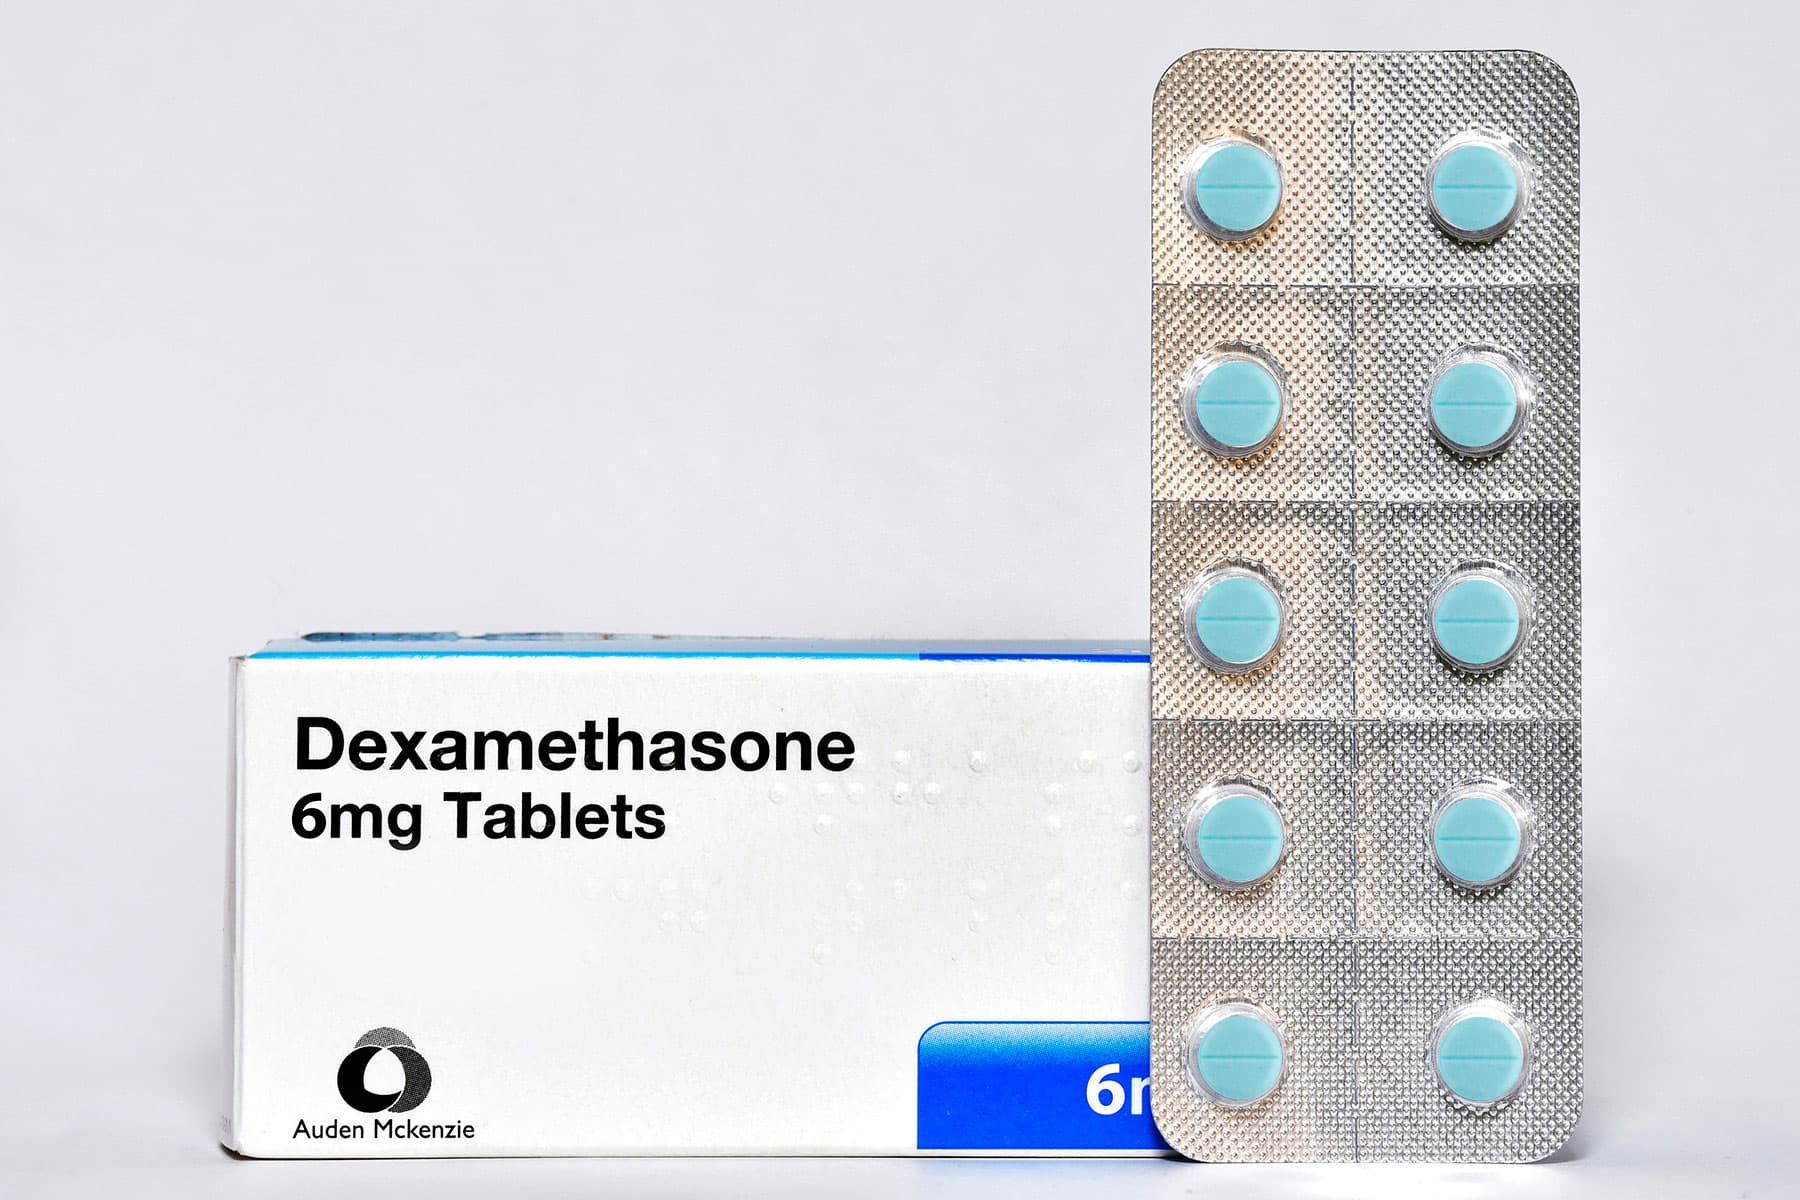 Why is Trump Taking Dexamethasone and Does It Work?  - web md